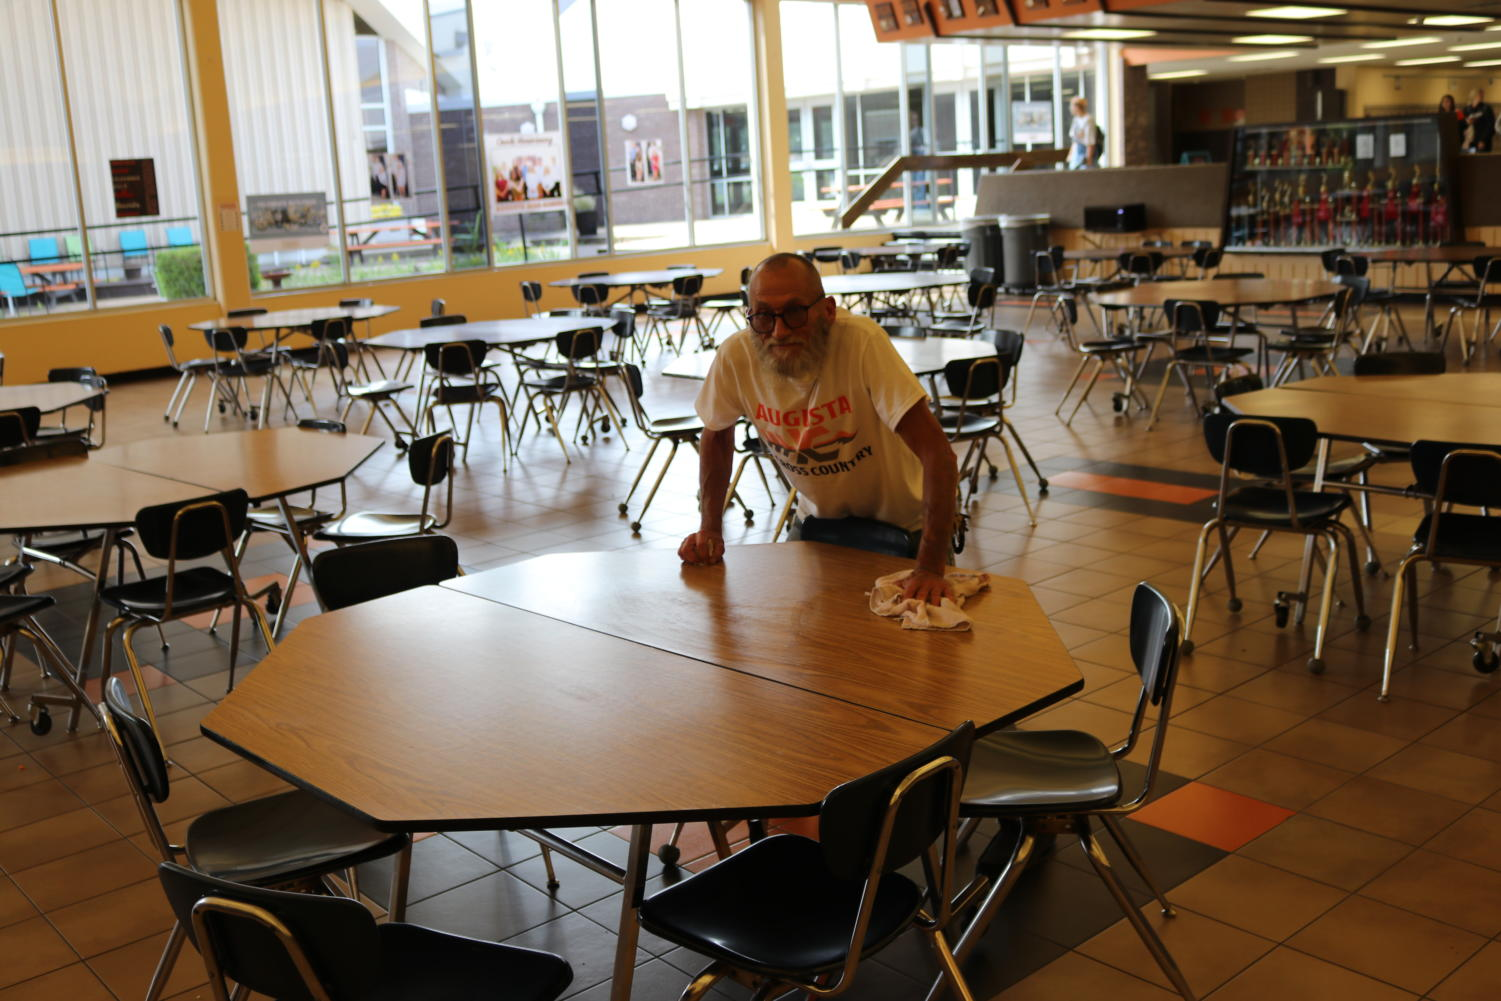 Head Custodian Steve Holladay wipes down tables after lunch for the next lunch period. Holladay has been replacing and restoring items that were stolen or damaged.